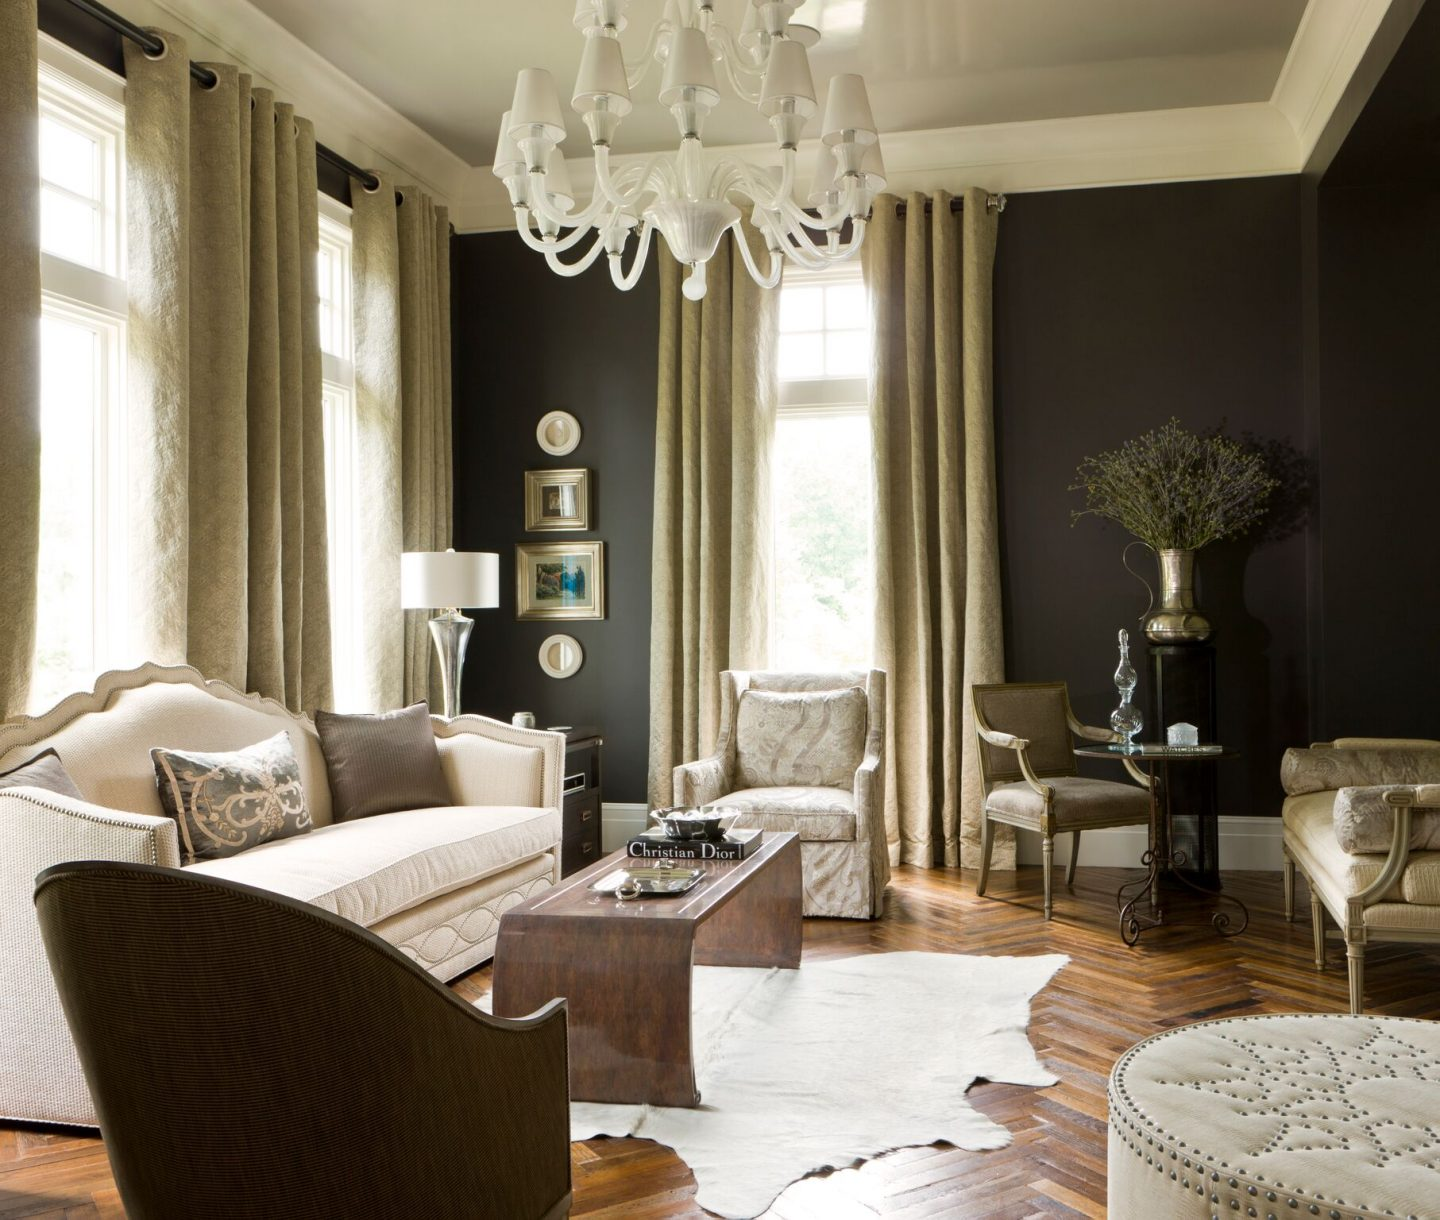 Handsome interior design inspiration from some of my favorite classic architects and designers of luxurious traditional homes and spaces. #traditionaldecor #interiordesign #classicdesign #classicarchitecture #homeideas #interiordesignideas #jeffreydungan #luxuryhomes